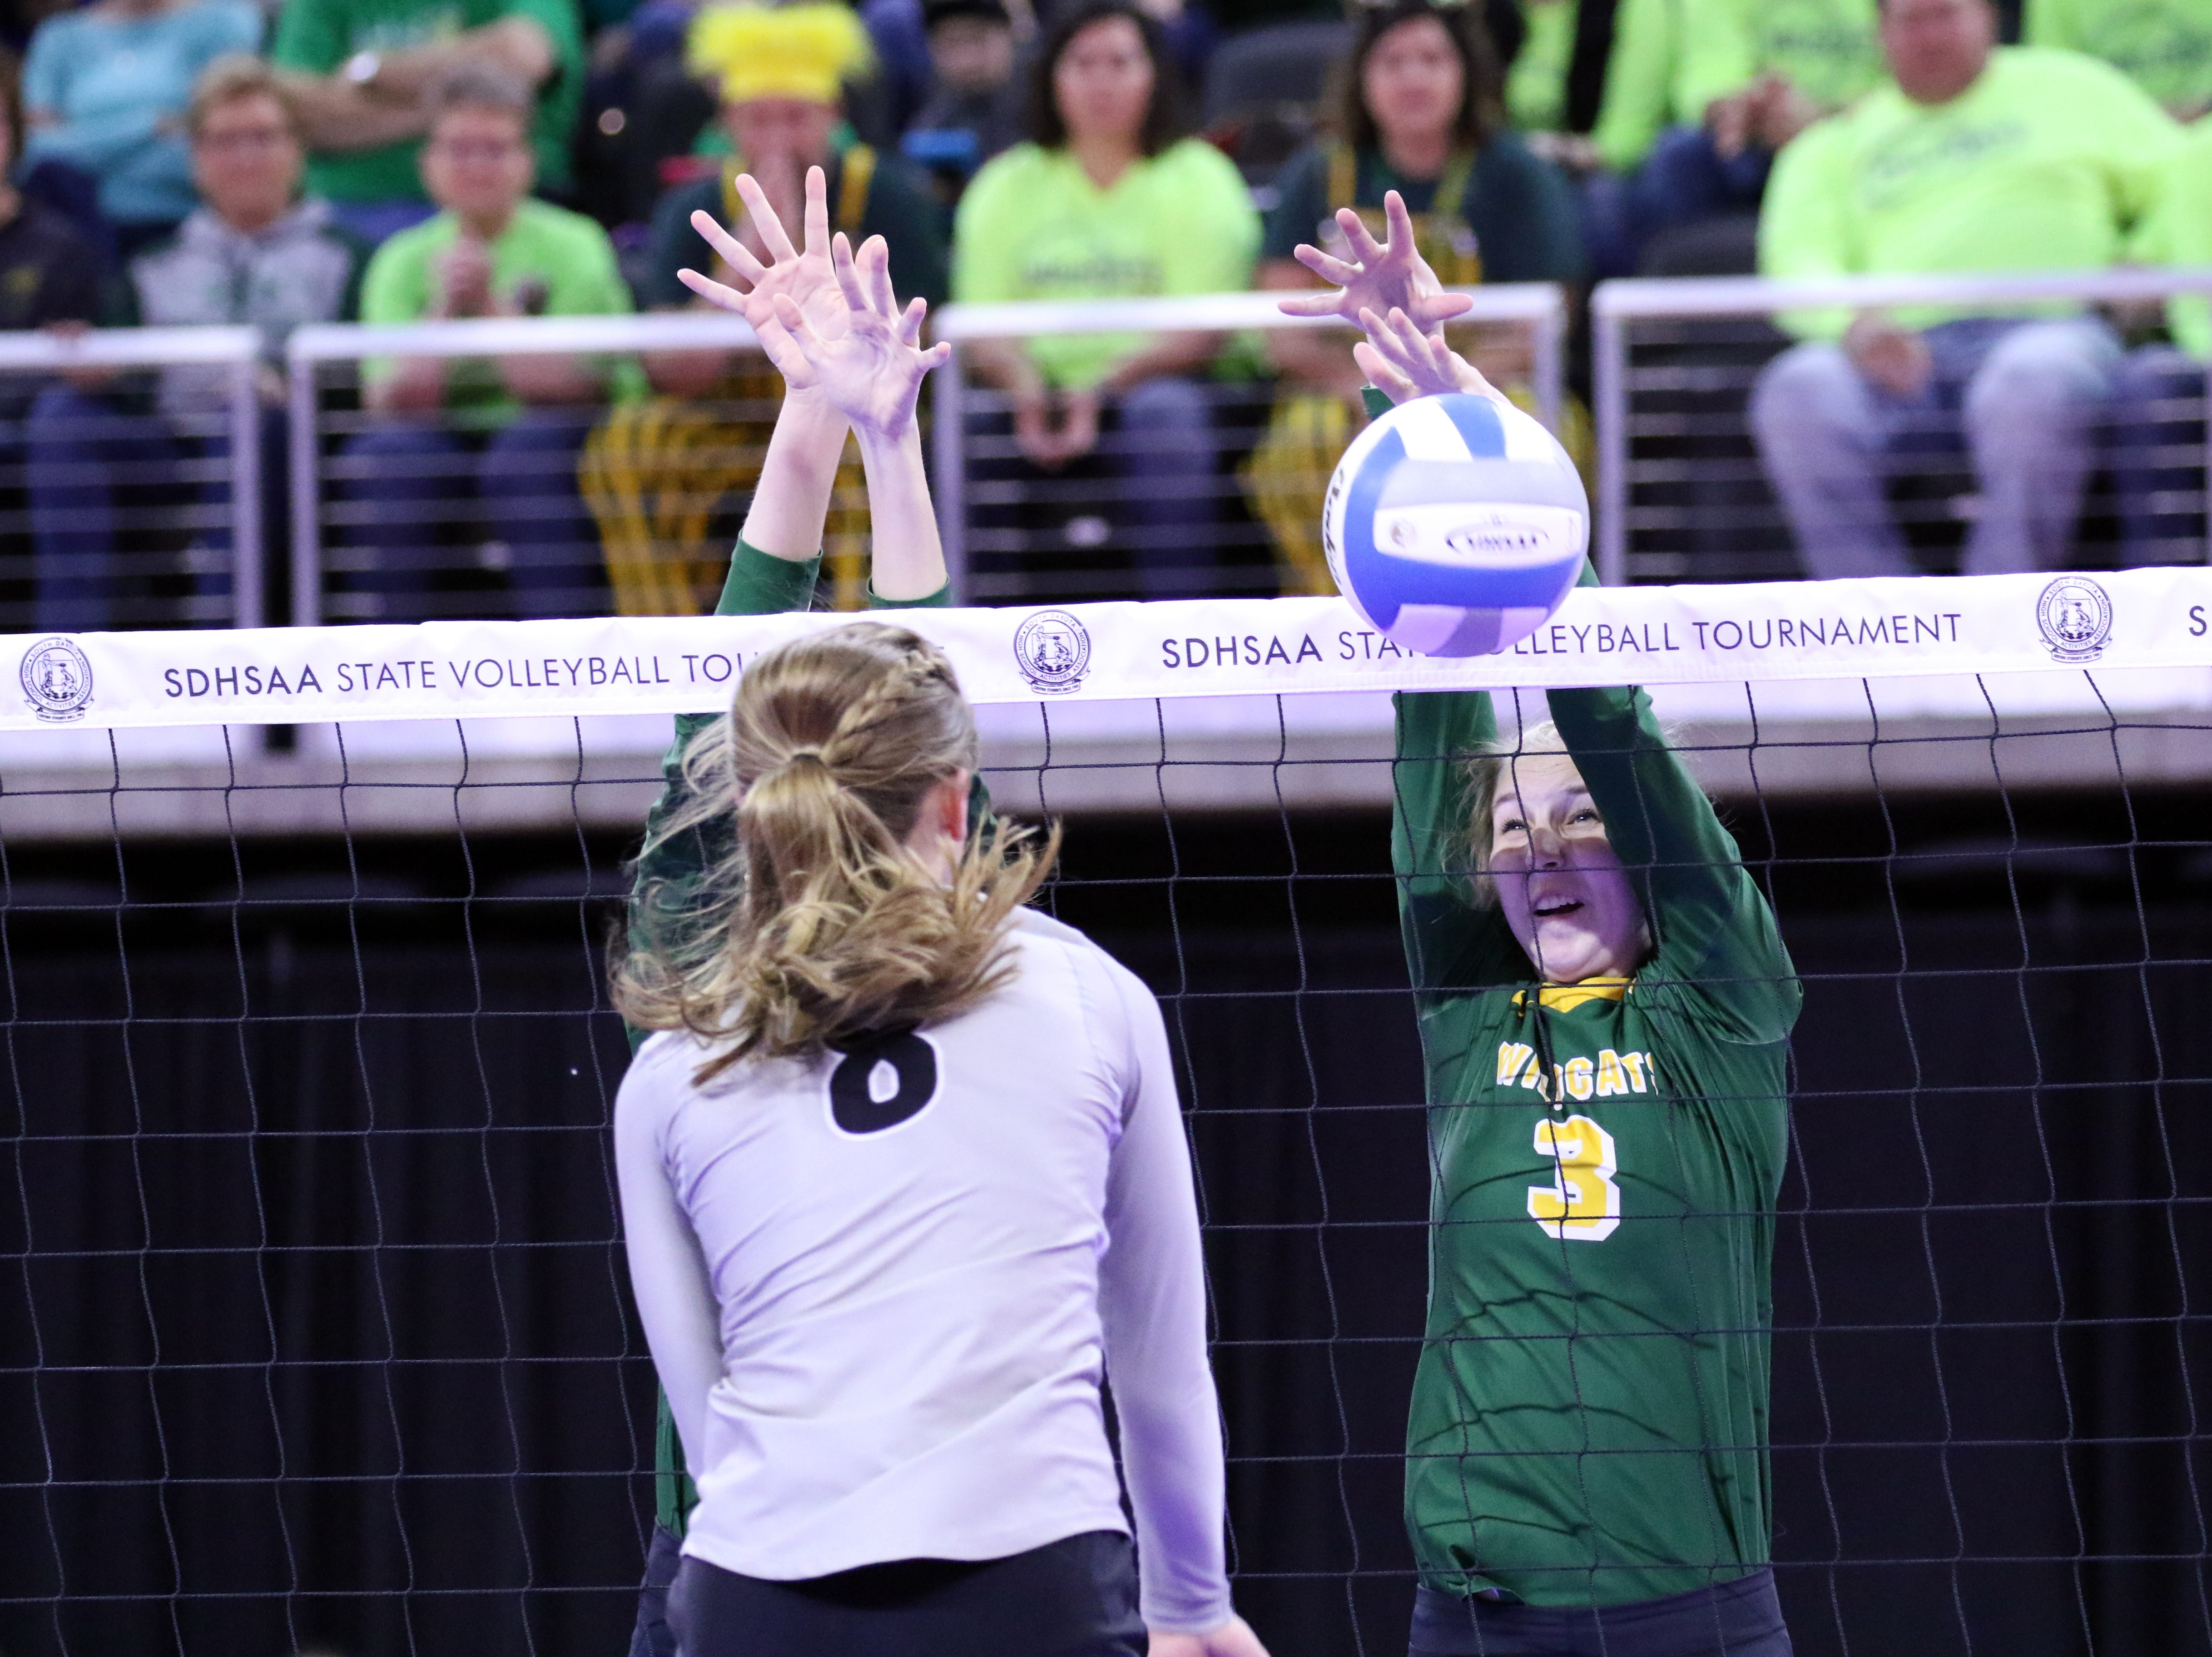 Caitlyn Fishbach of Northwestern blocks a spike by Kennedy Leiferman of Kimball-White Lake during Thursday's state tournament in Sioux Falls.